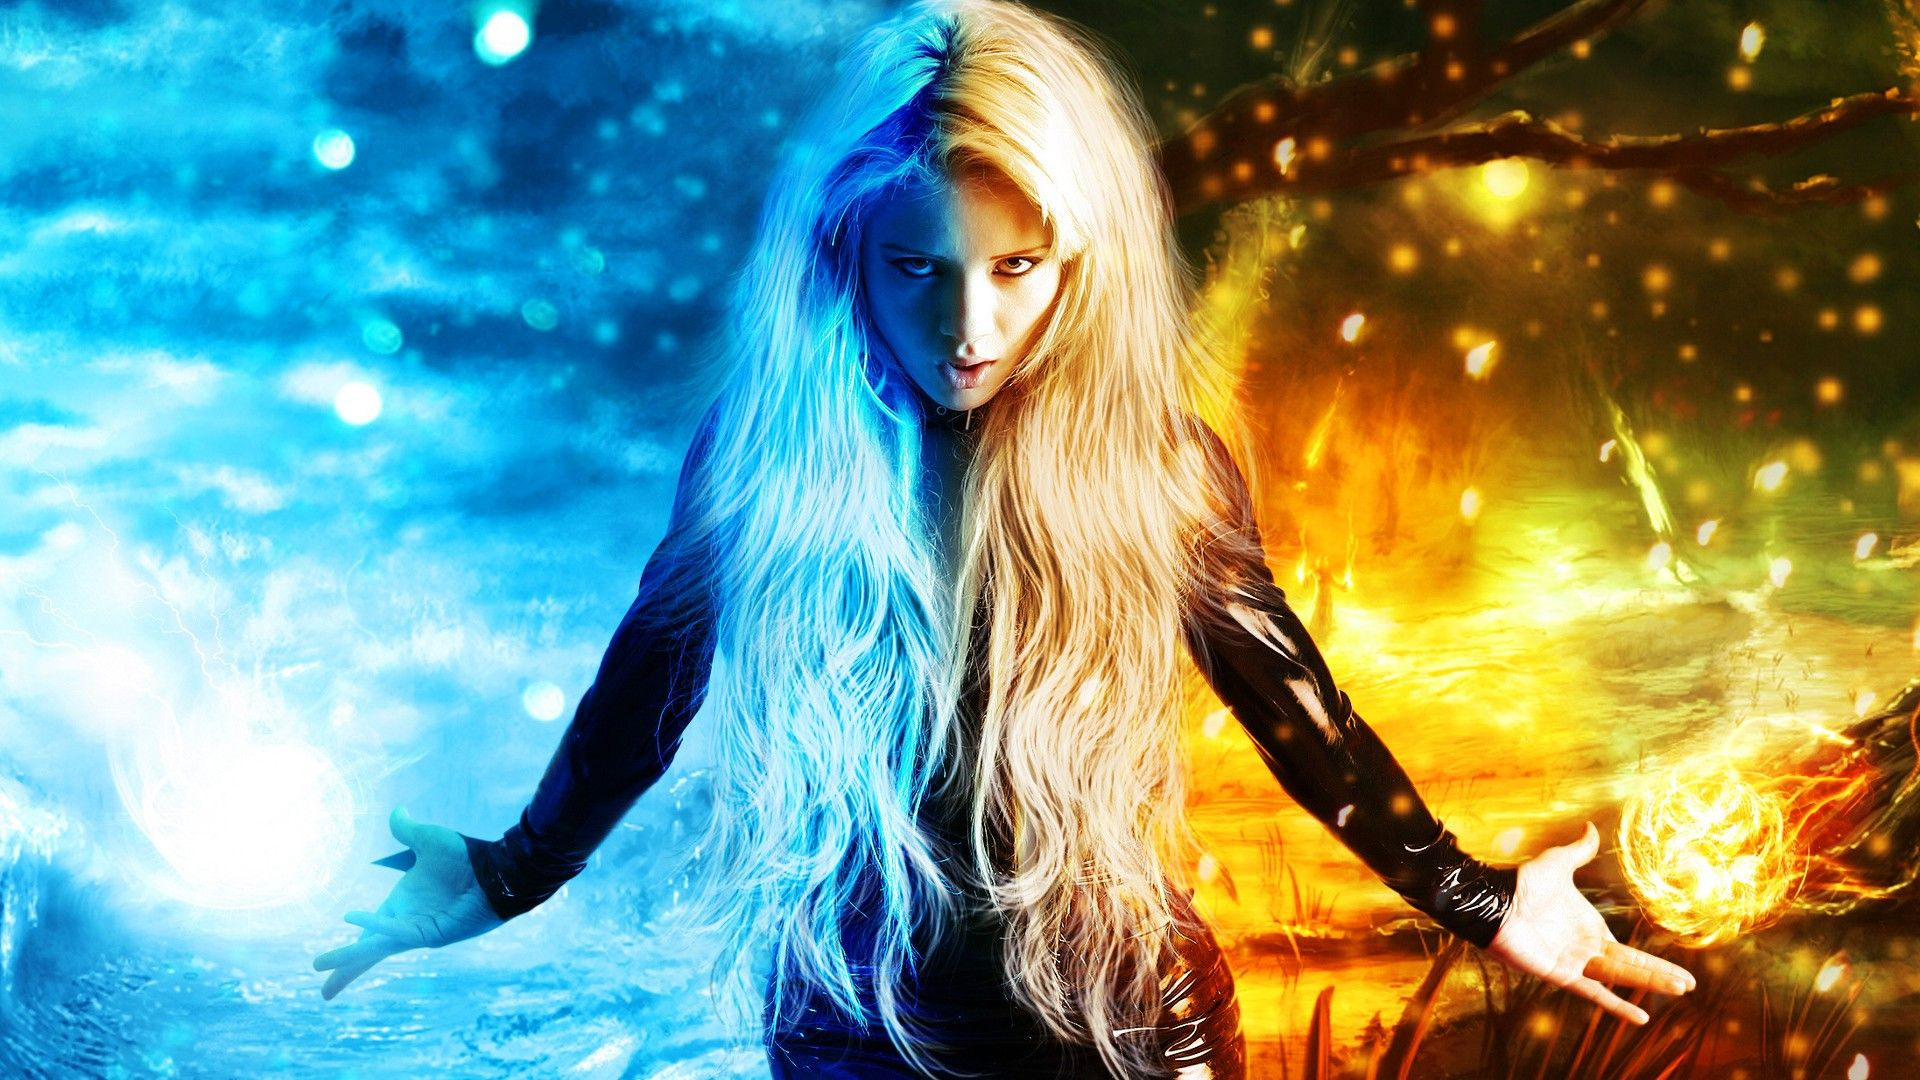 Girl Of Fire And Ice Wallpaper Fantasy Girl Fire And Ice Wallpaper Fantasy Images